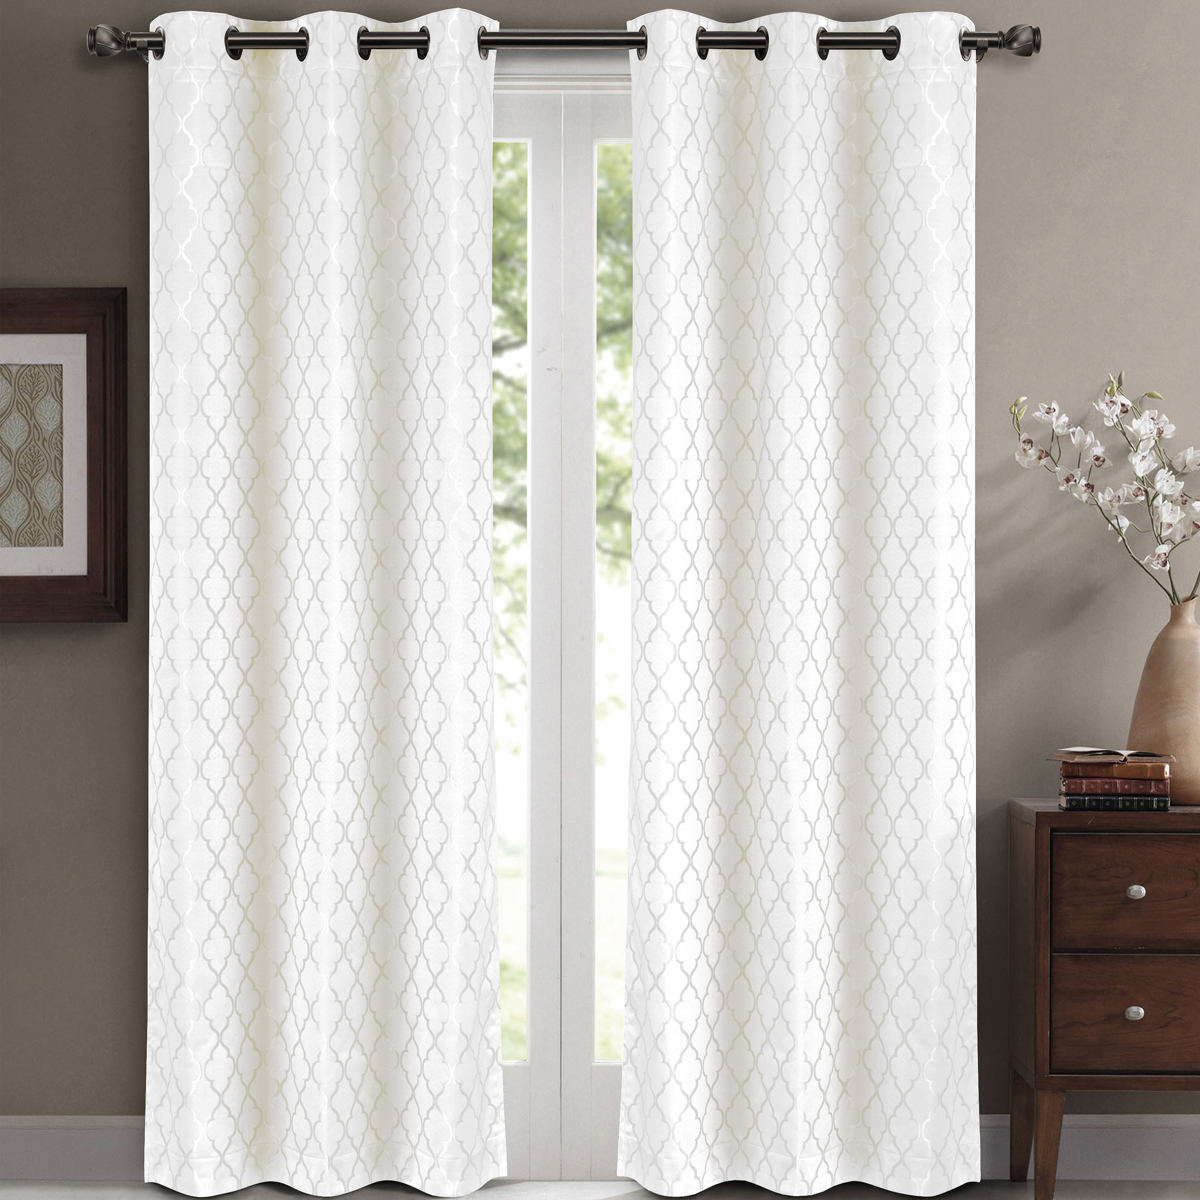 brick home shading curtains bedroom window red perforated curtain blackout decor